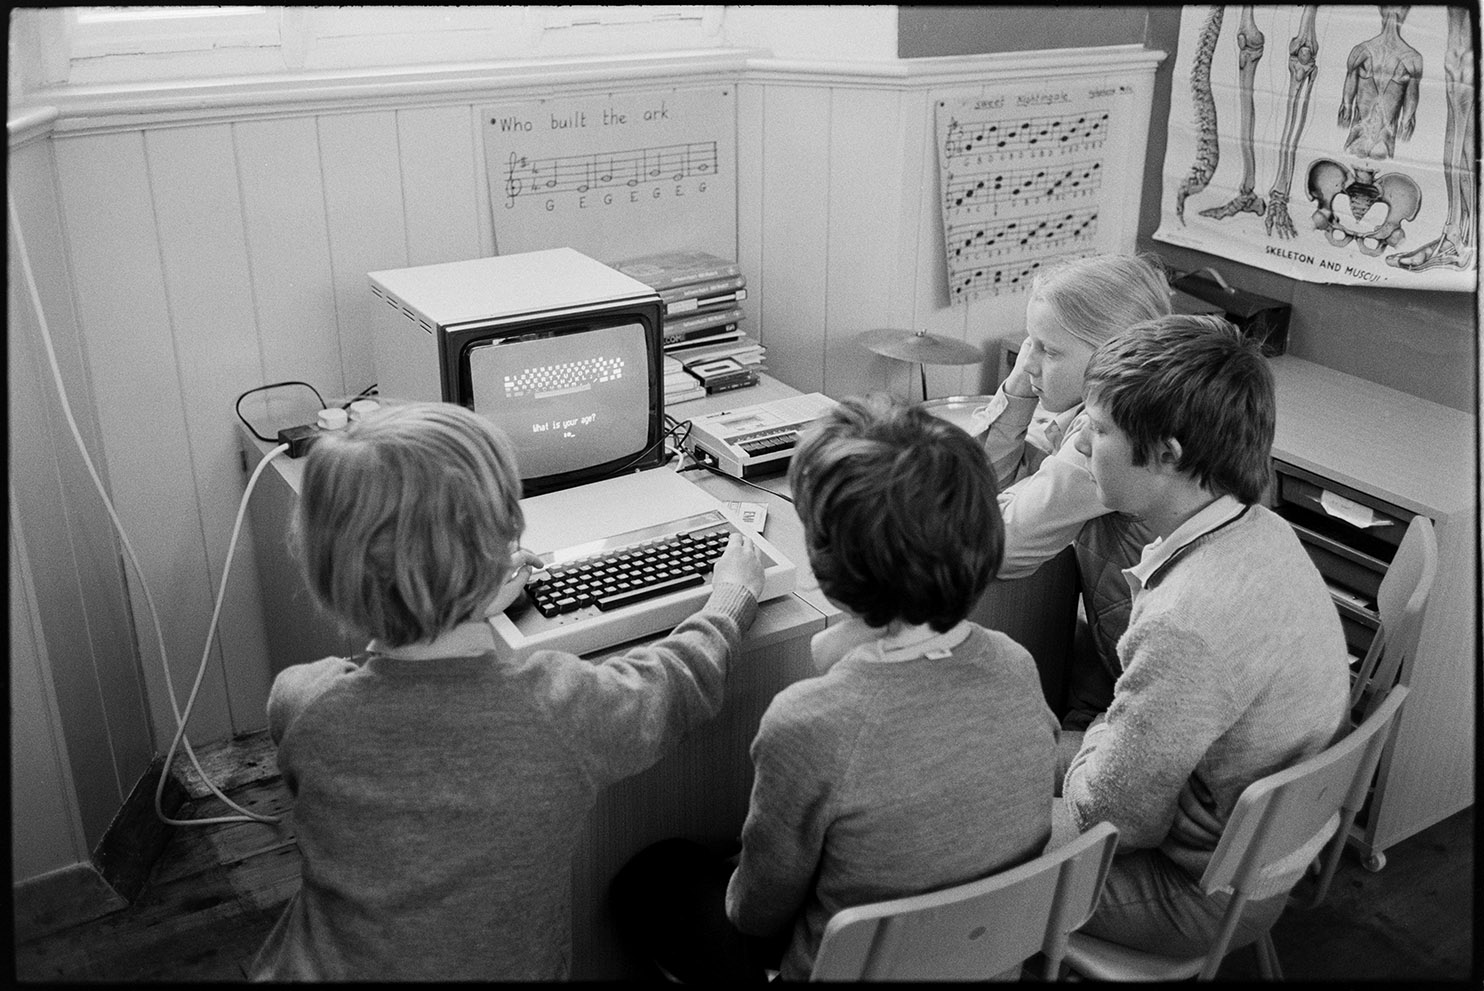 School children using computer BBC Micro, Dolton, June 1984. Documentary photograph by James Ravilious for the Beaford Archive © Beaford Arts